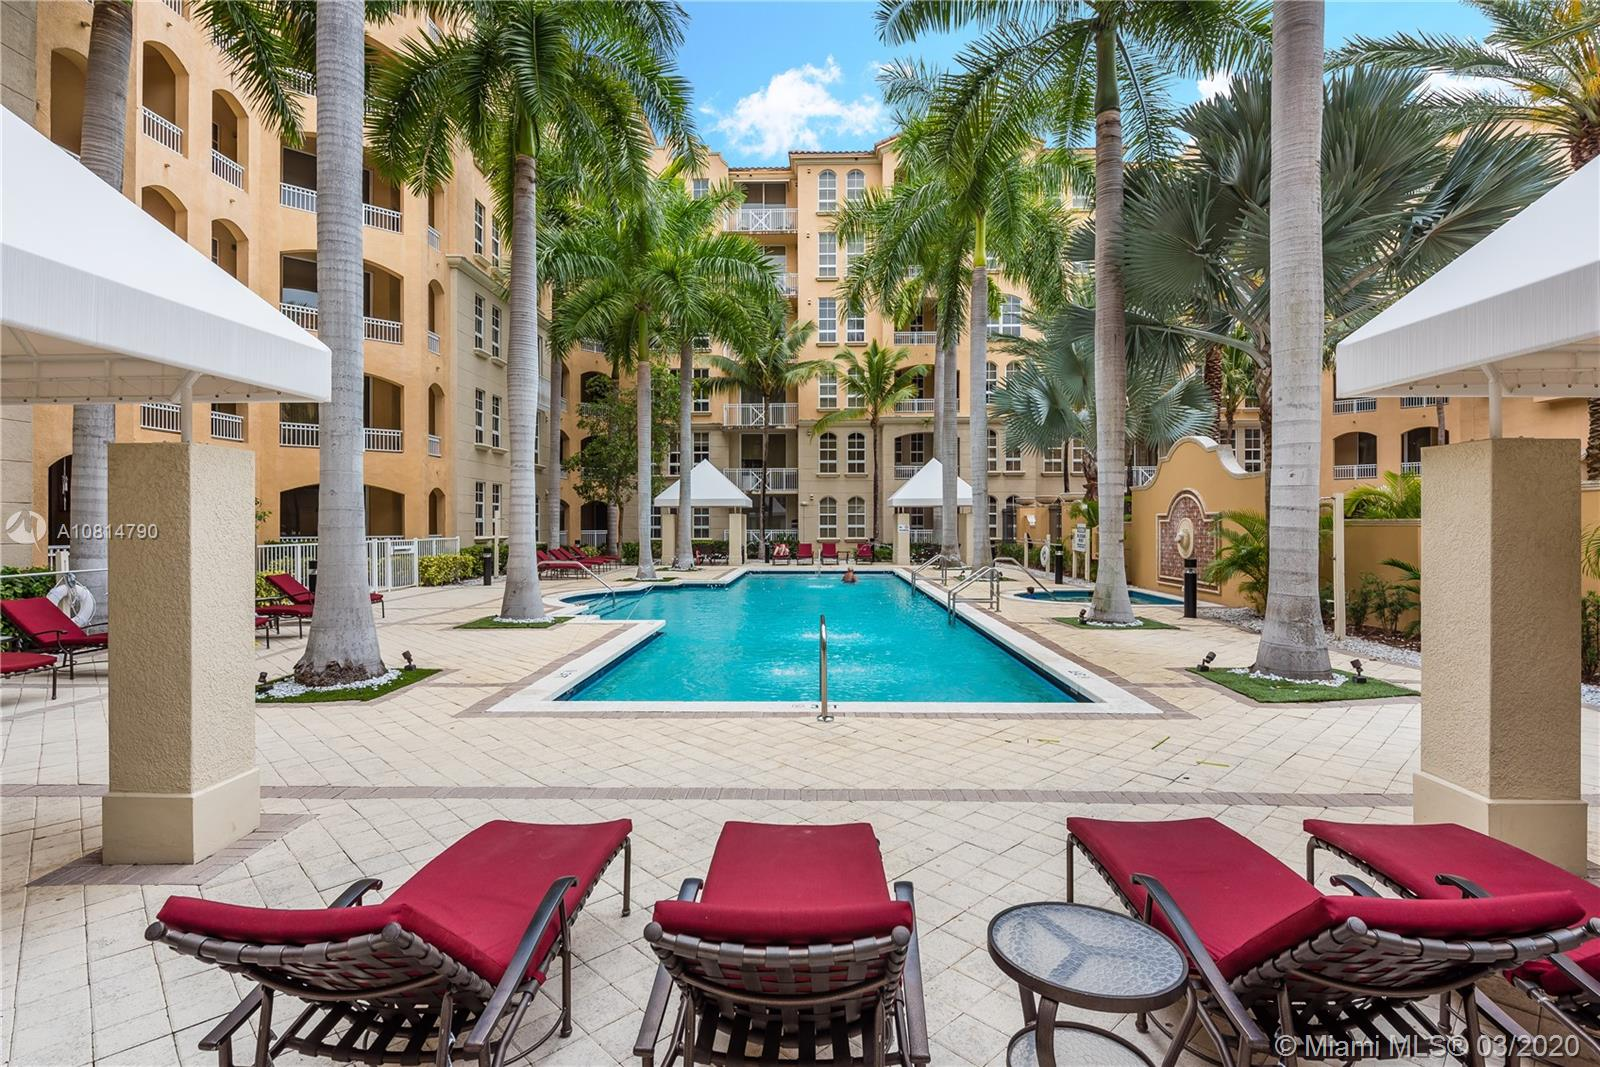 Photo of 3001 185th St #125, Aventura, Florida, 33180 -